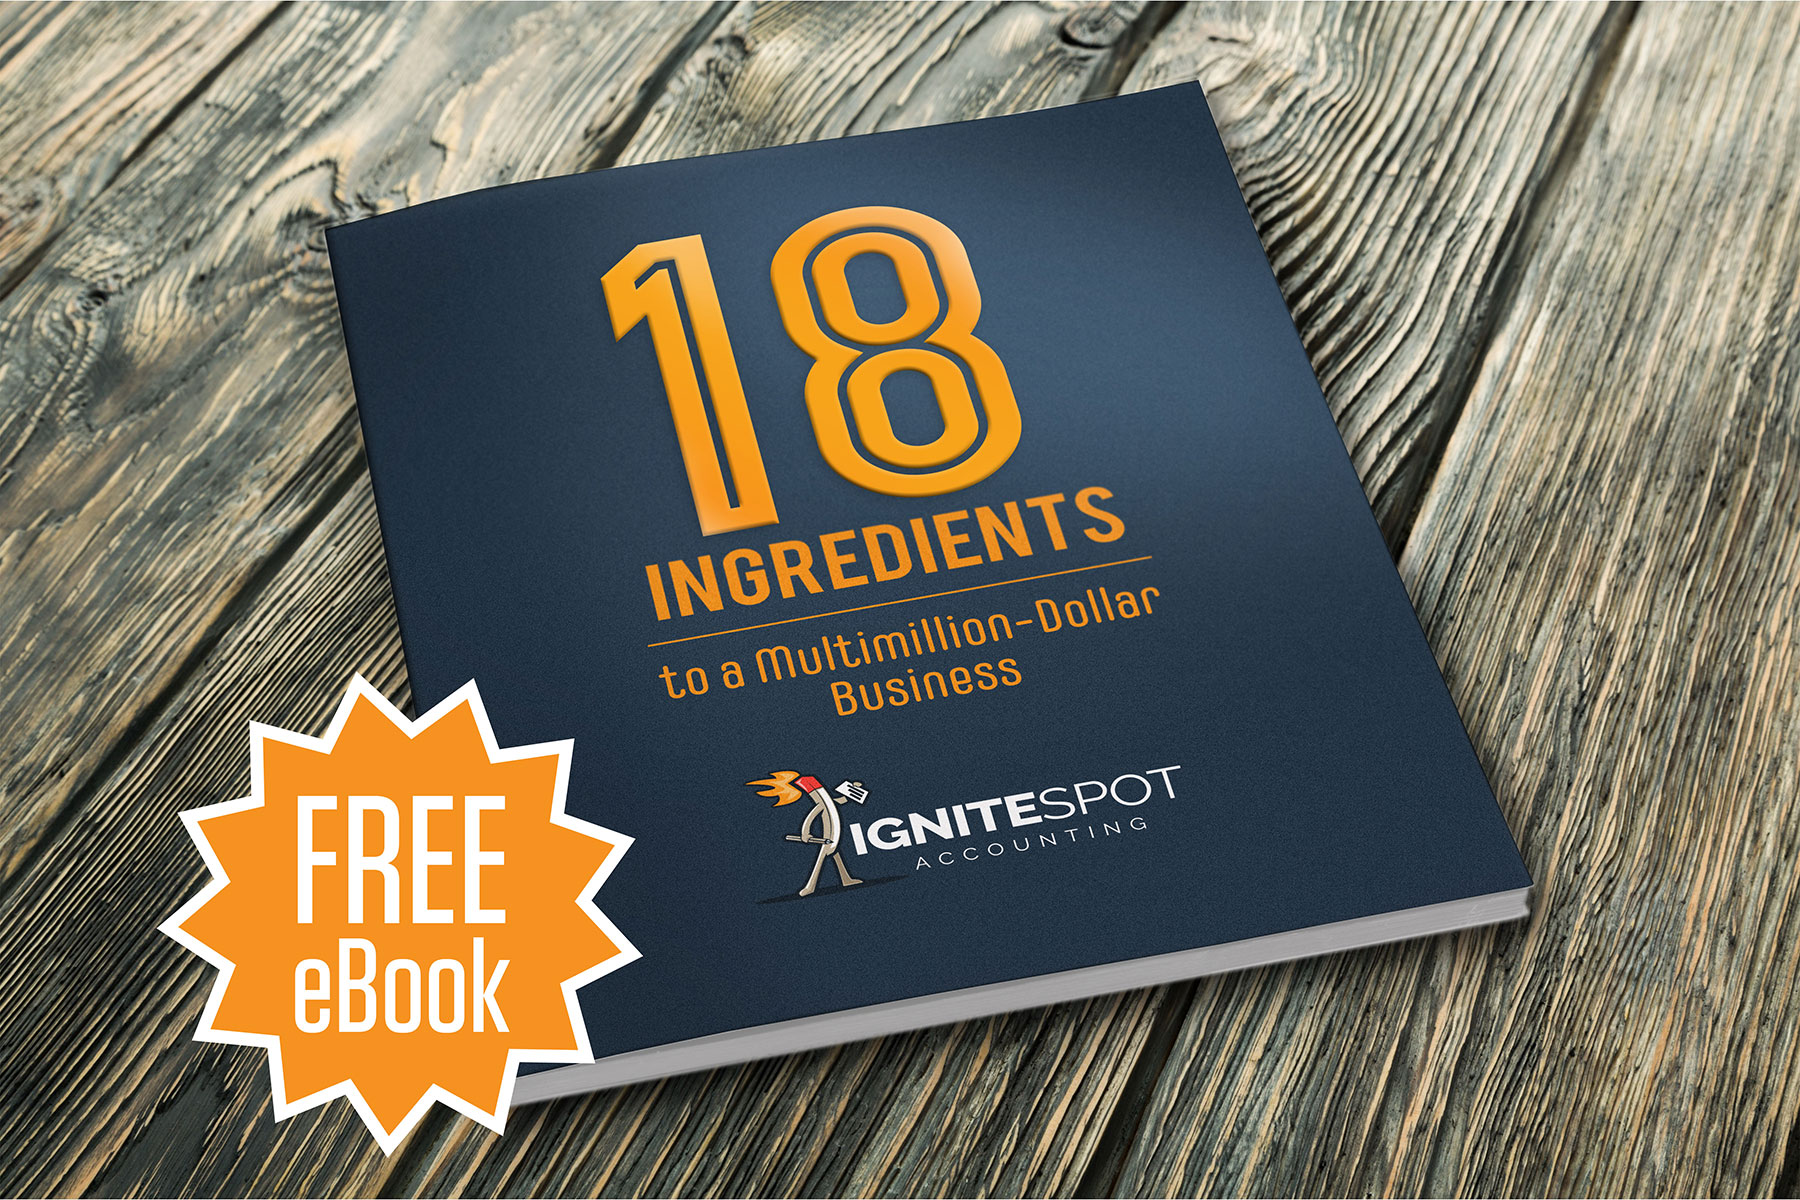 18-Ingredients-to-a-Multi-Million-Dollar-Business